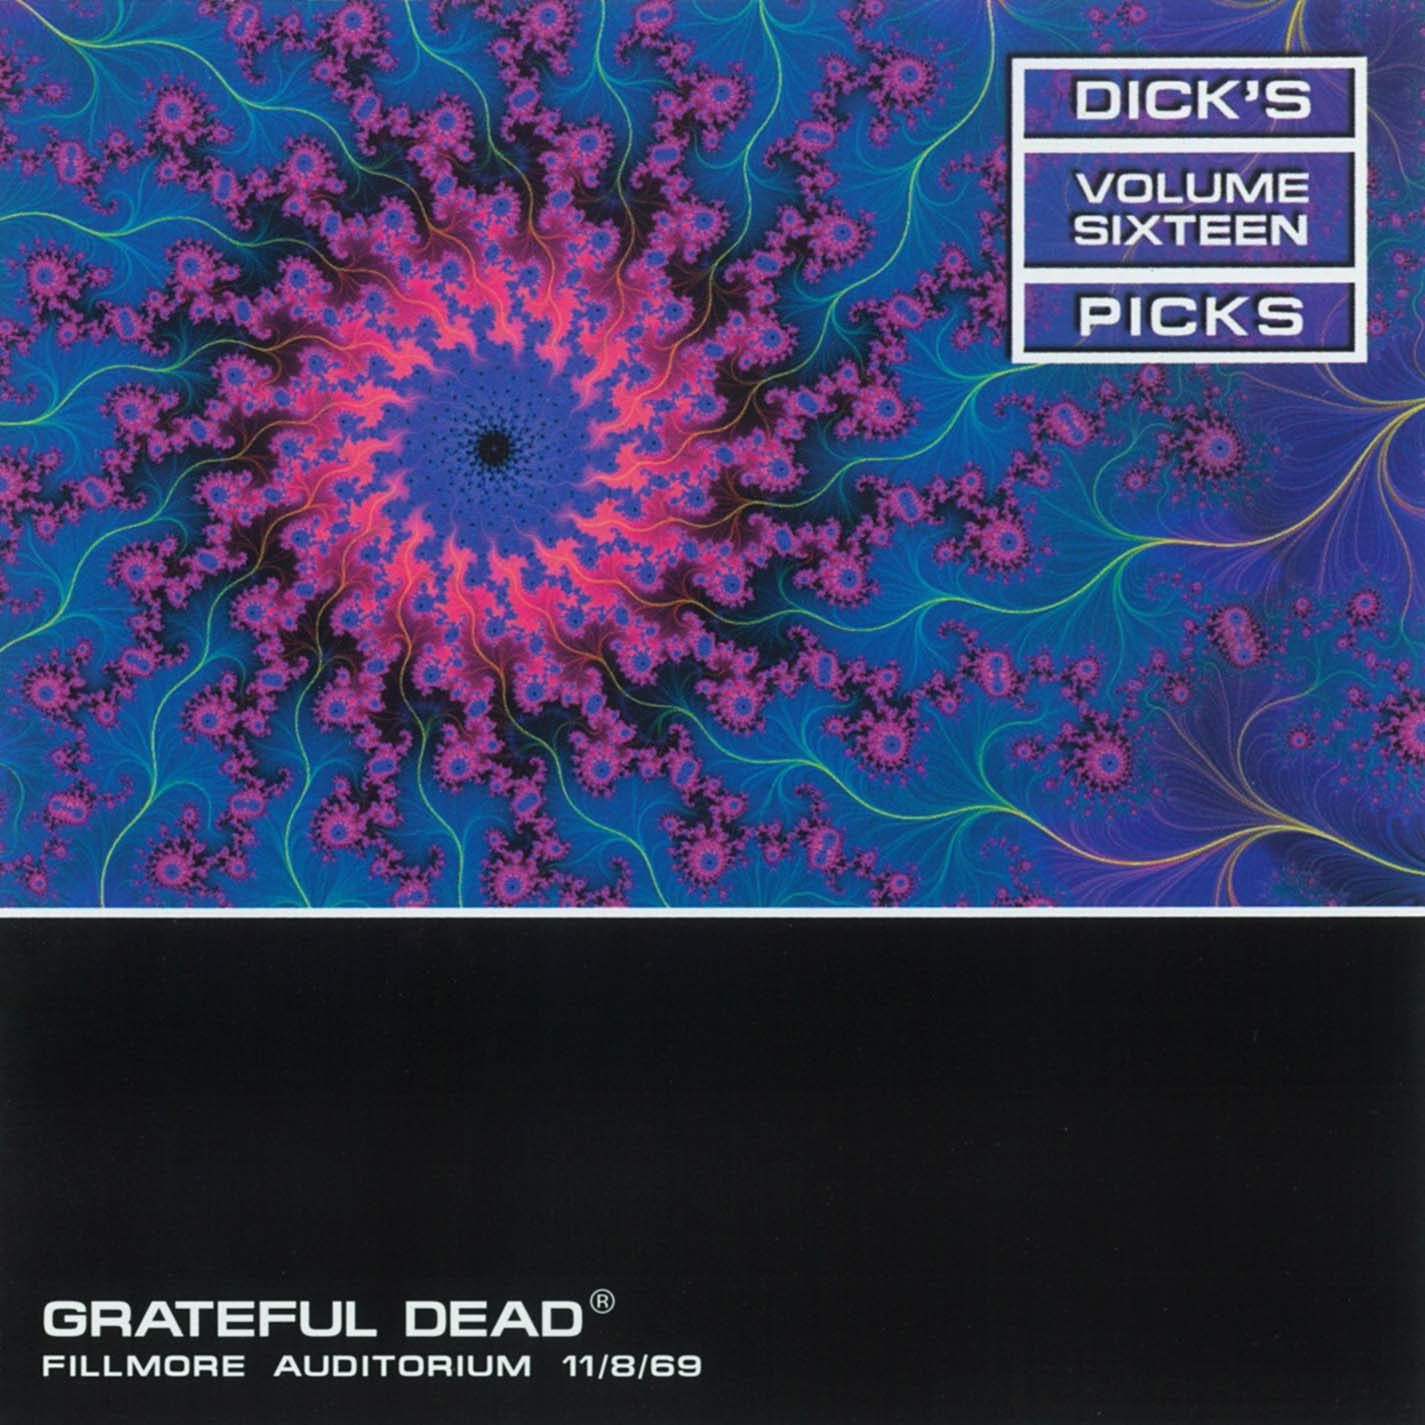 Grateful Dead Dick's Picks 16 album cover artwork